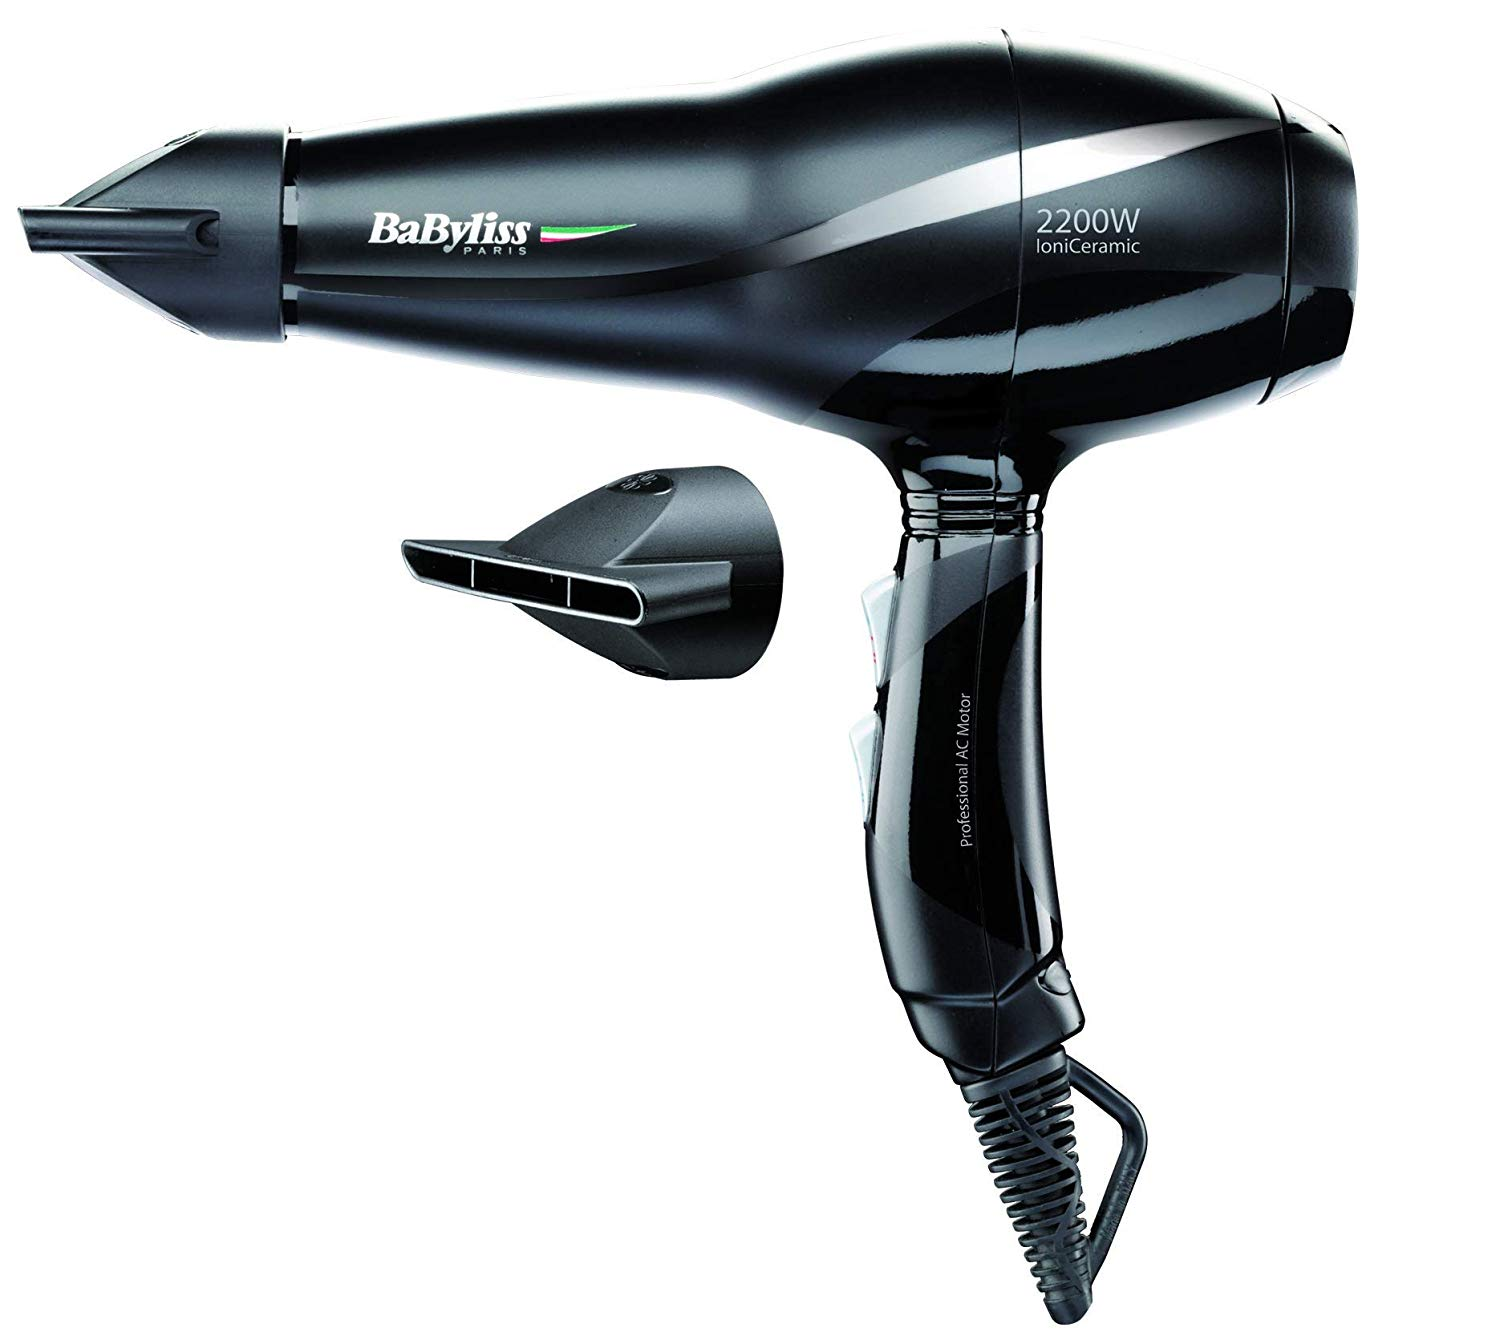 Pro Express 6614E hair dryer